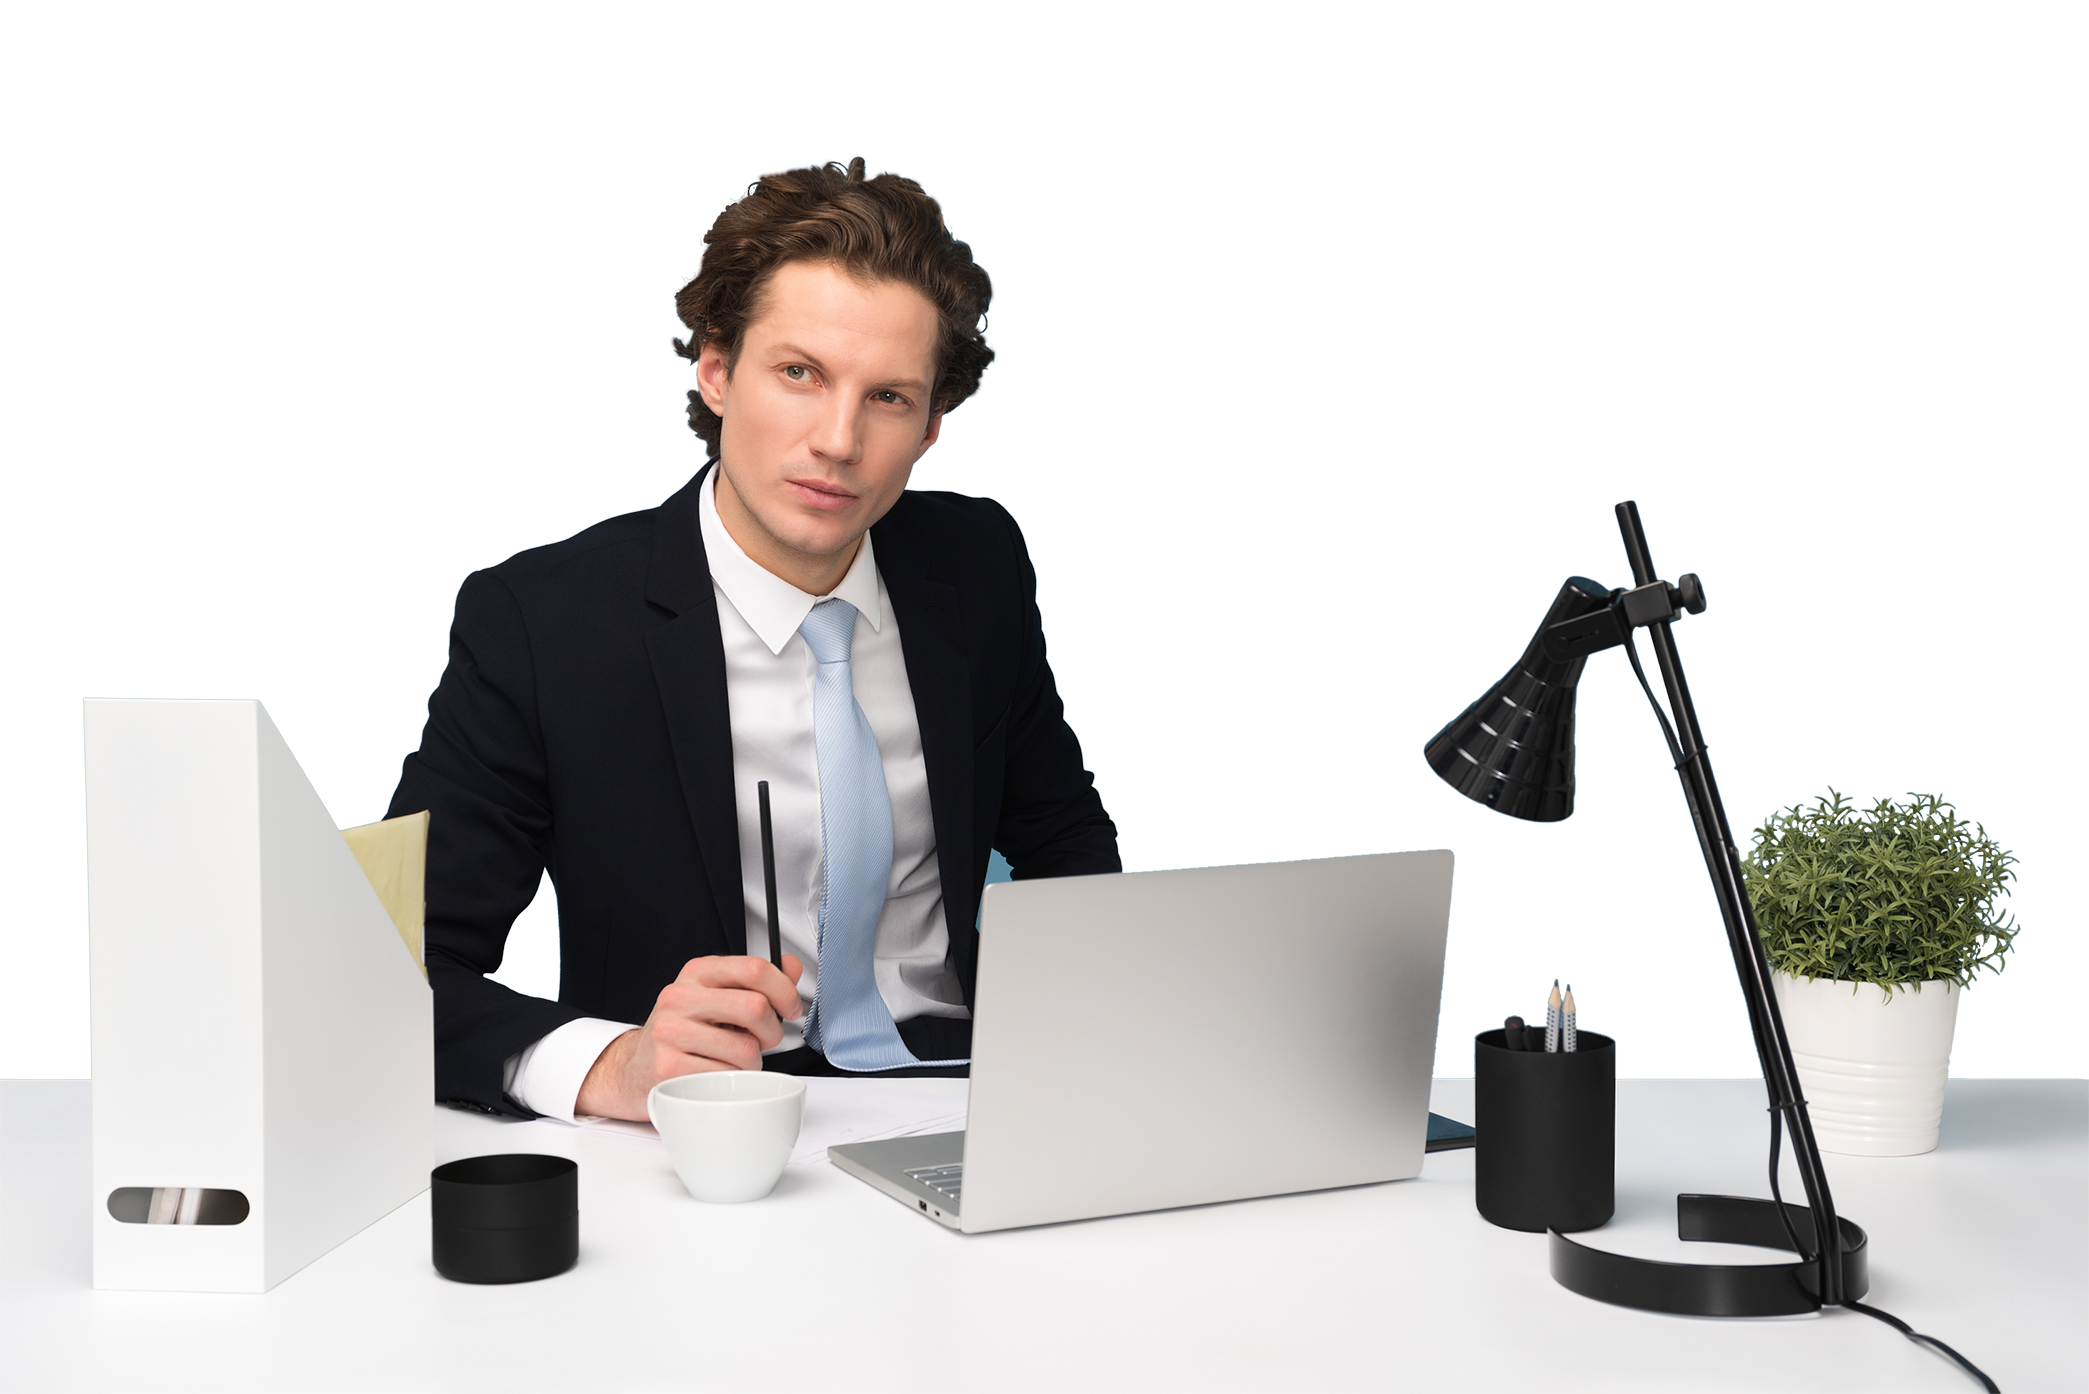 Man working in office transparent background PNG